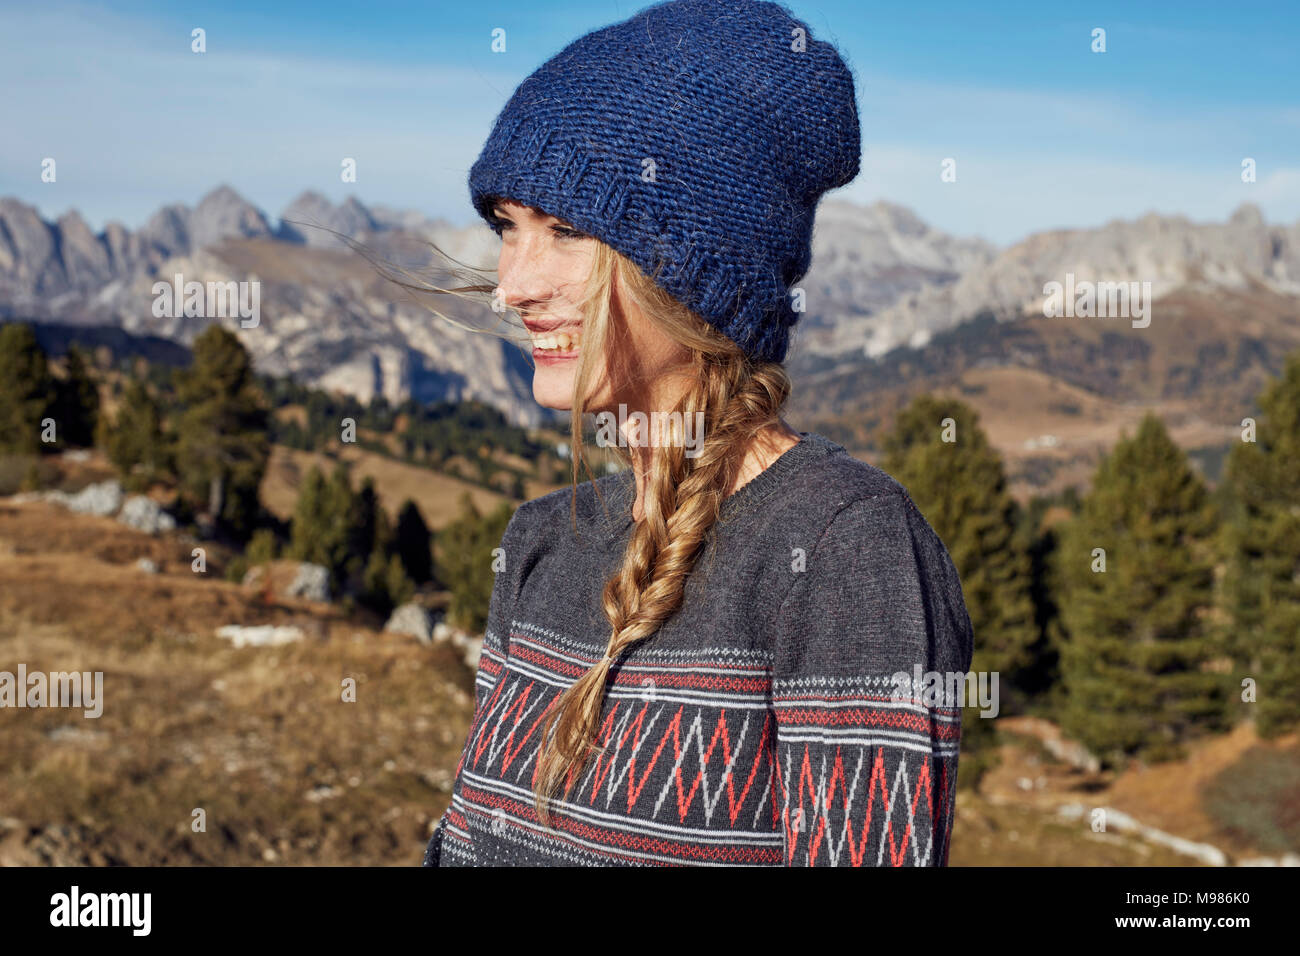 Portrait of happy young woman hiking in the mountains - Stock Image